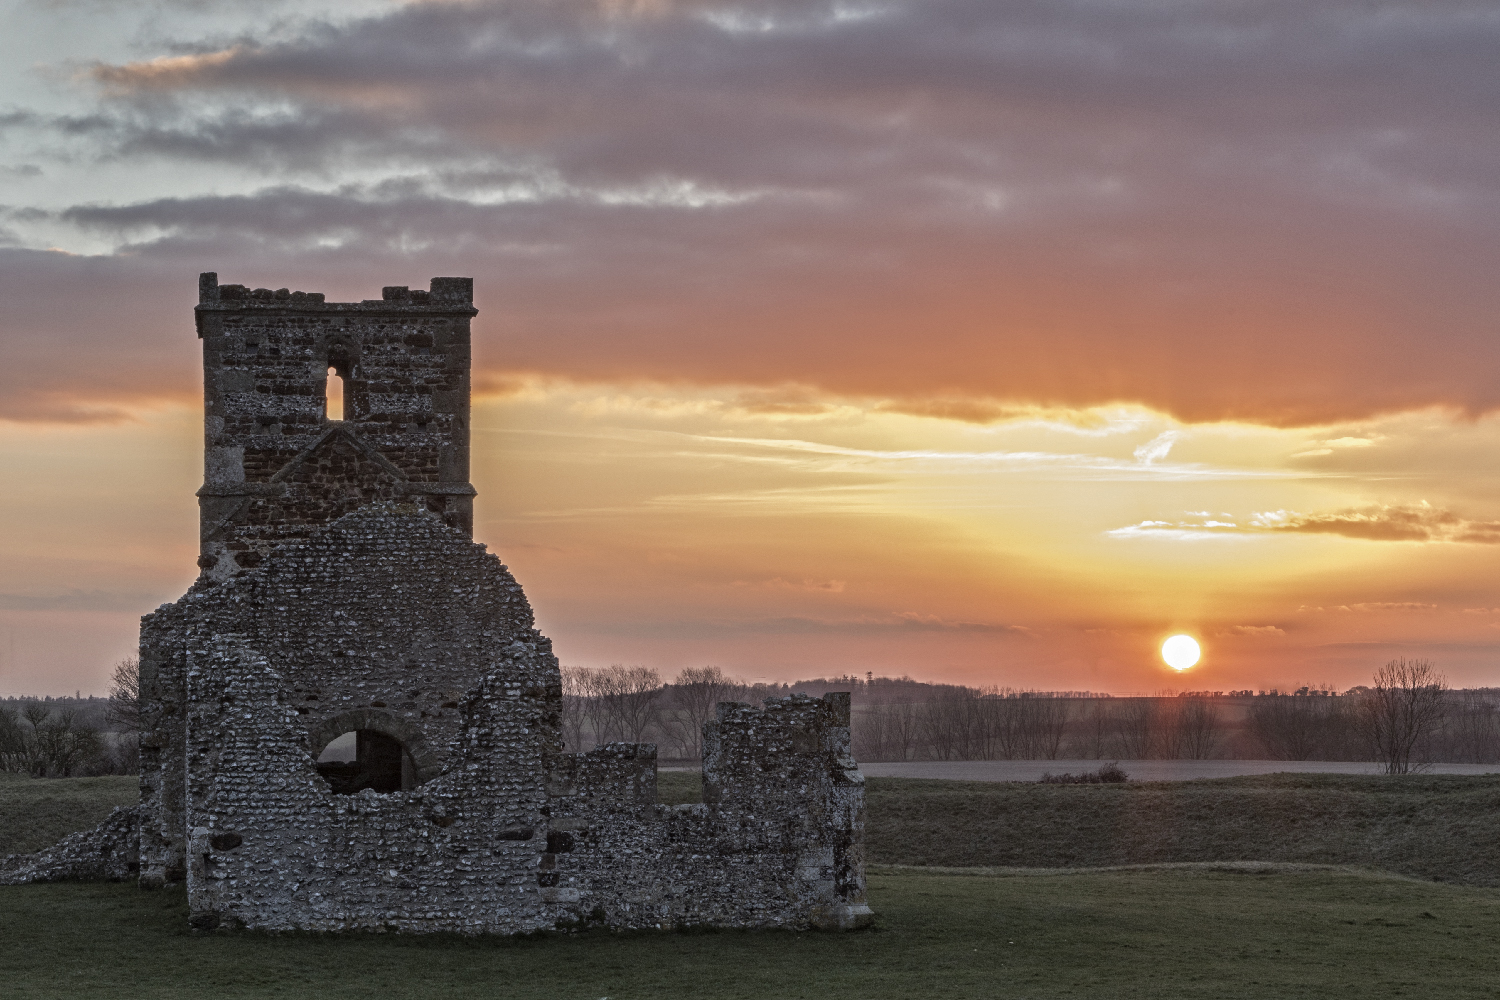 Sunset, Knowlton church